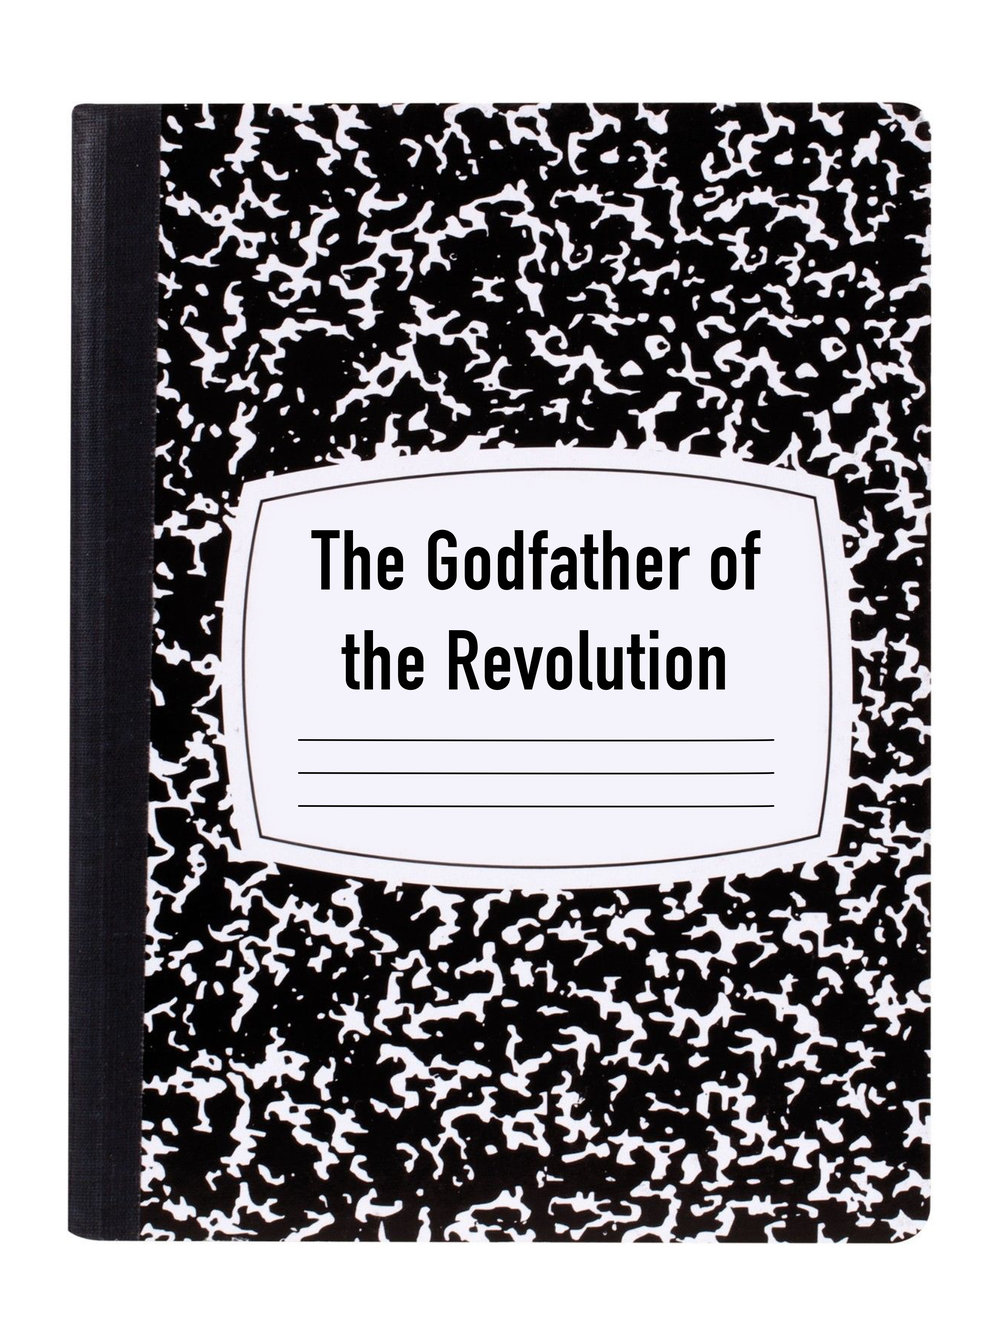 THE GODFATHER OF THE REVOLUTION